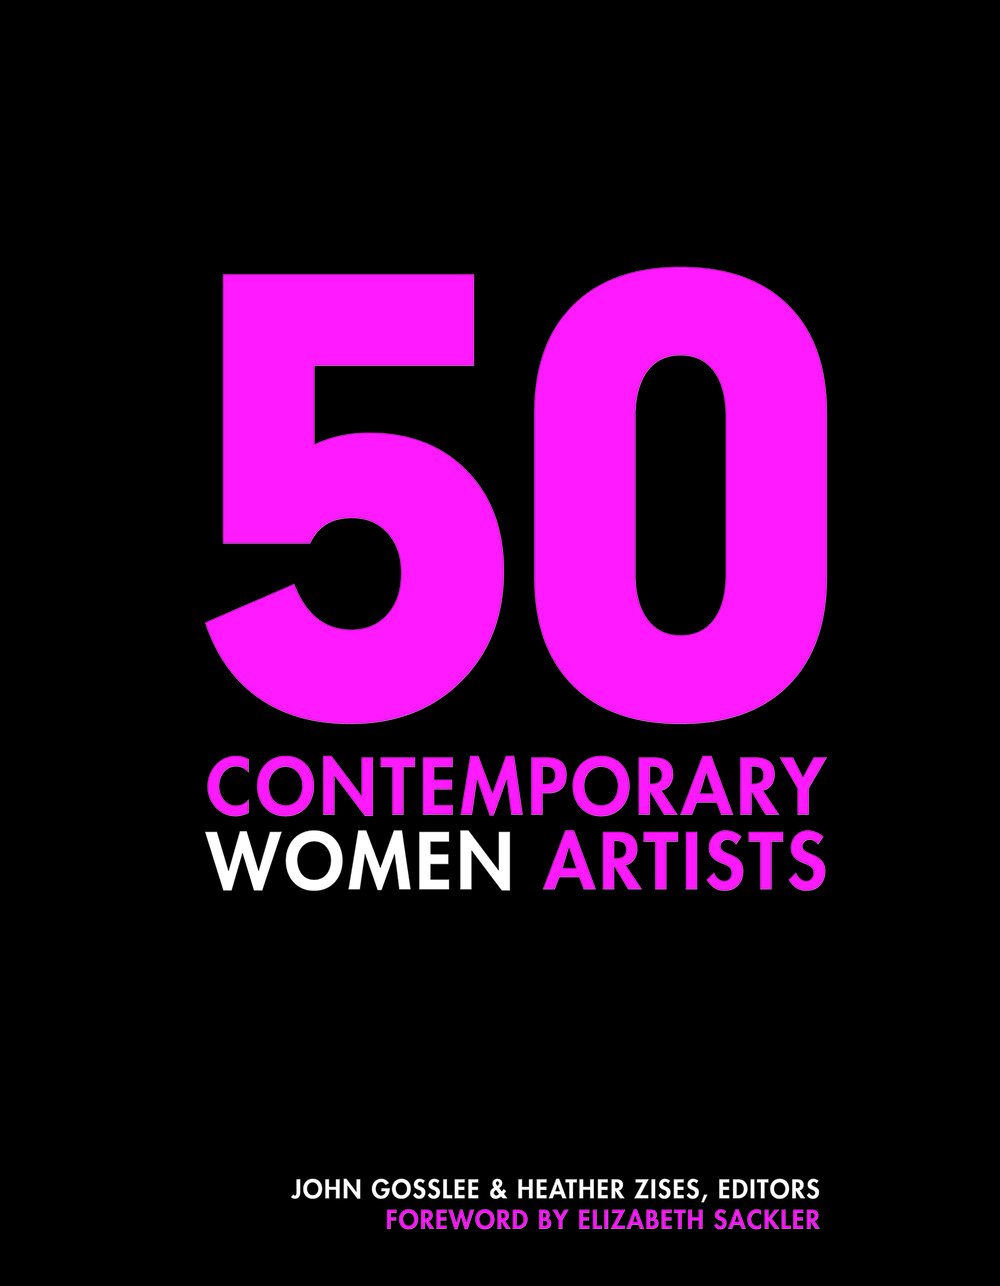 50 Contemporary Women Artists_CVR FINAL 2.JPG